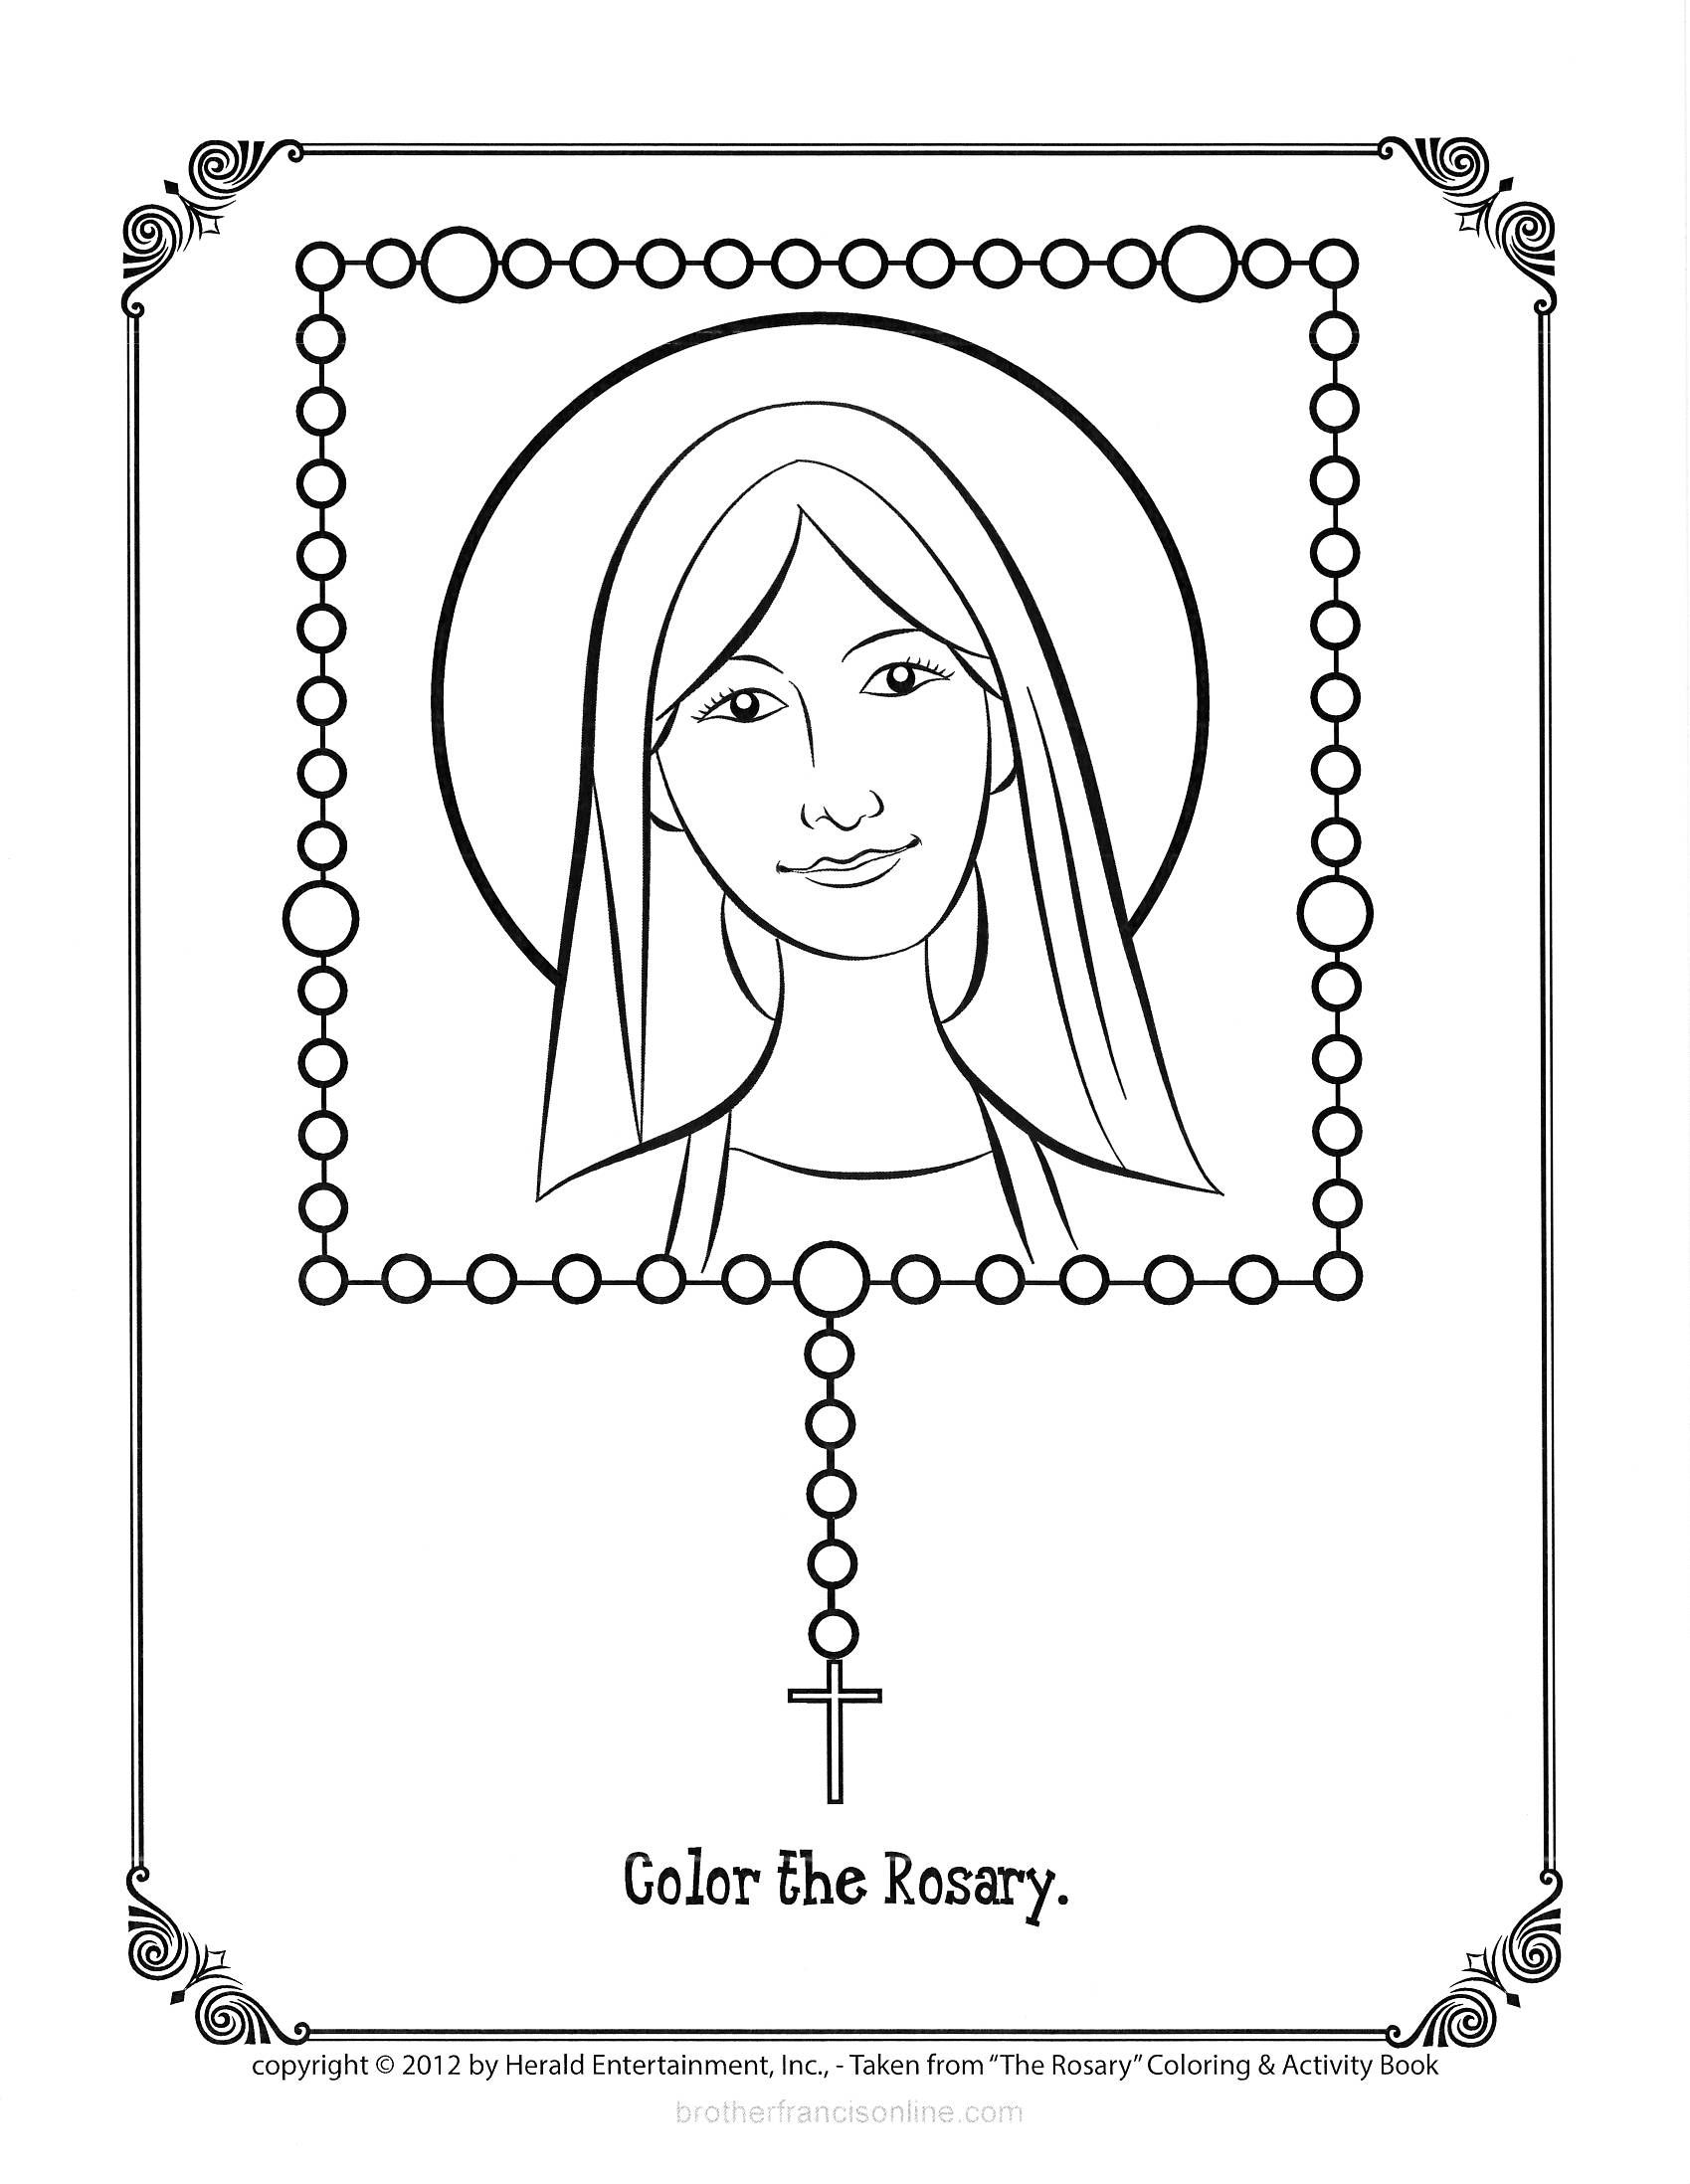 pray and color a rosary bead as you complete each prayer and mystery see our other pins for the rosary booklets in english and spanish as well as folding  [ 1699 x 2196 Pixel ]